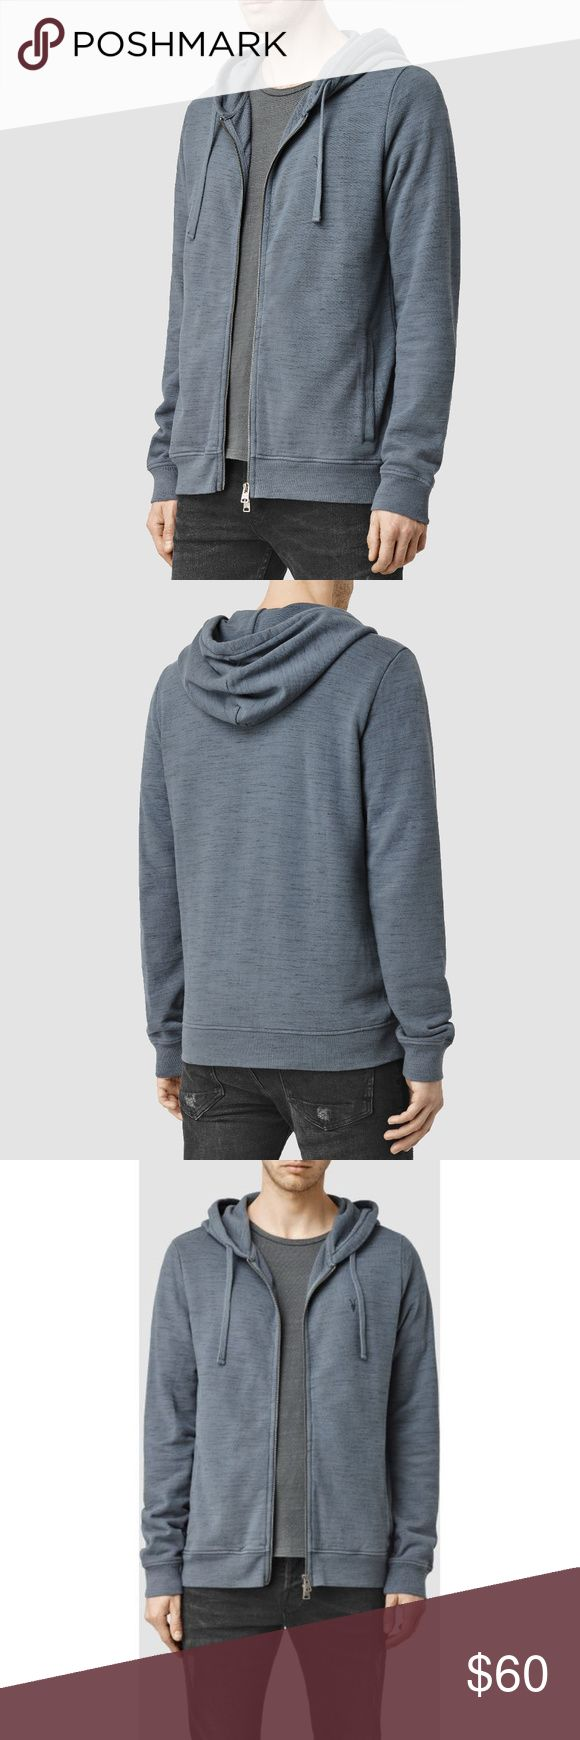 """AllSaints Ravage Blue ZIP SWEATSHIRT HOODY xs m For Sale is a stunning All Saints Deep ocean Blue """"Ravage """" Hoody / Zip Sweatshirt  Brand New with Tags  Chest Logo Detailing  Great comfy hoody at a knockdown price!  100% Authentic  Model: WILDE HOODY  Color:Deep ocean blue  Can be dressed up or down.  A great stylish hoody that's massively comfortable. All Saints Shirts Sweatshirts & Hoodies"""